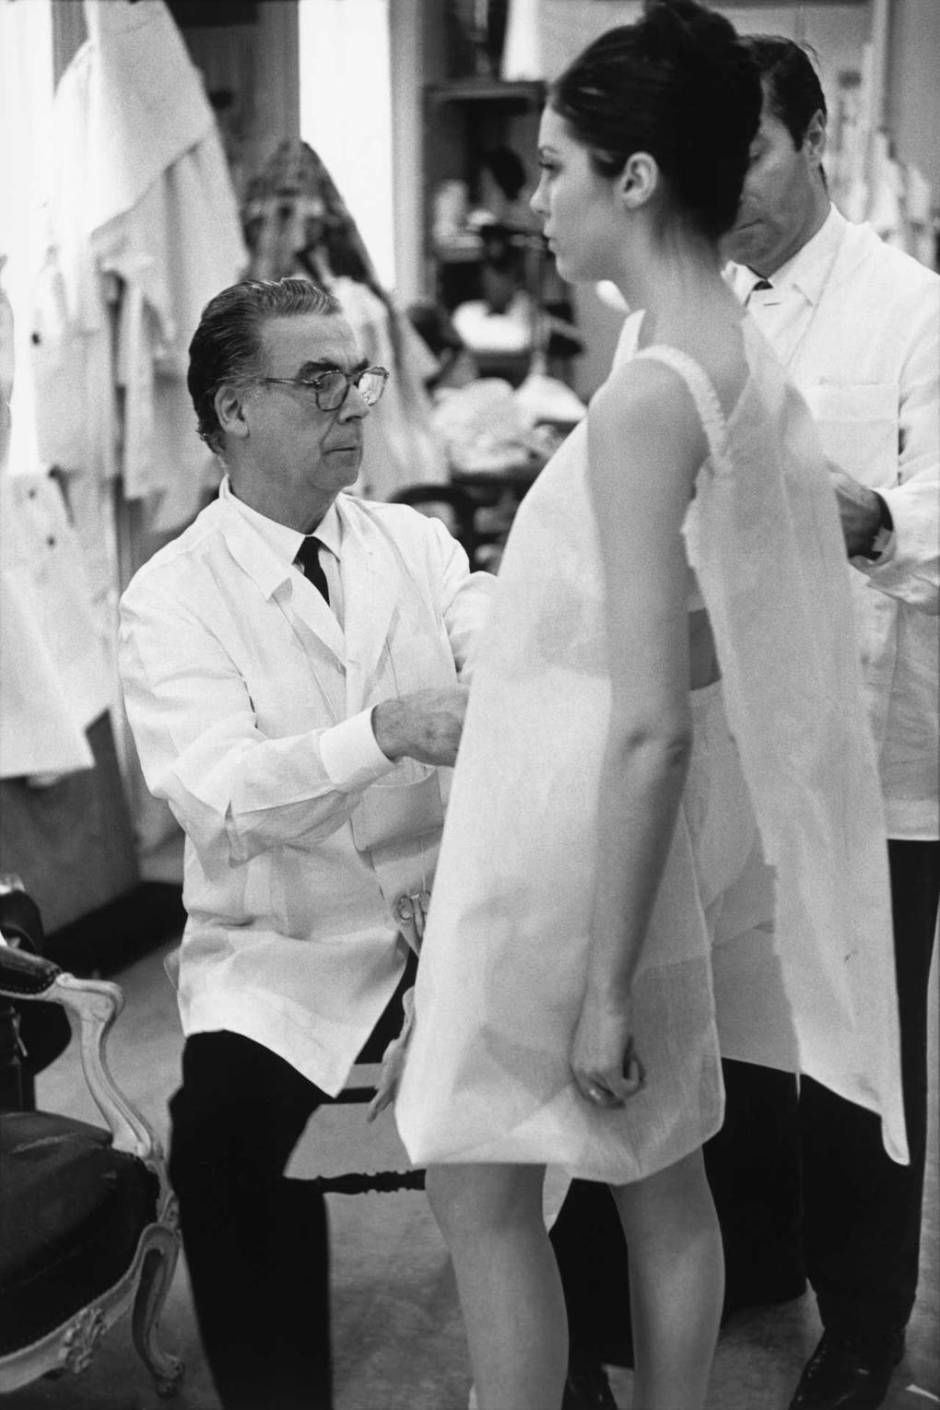 OPENER_Cristobal-Balenciaga-at-work-Paris-1968-Photograph-Henri-Cartier-Bresson-CREDIT-Henri-Cartier-Bresson-Magnum-Photos.jpg